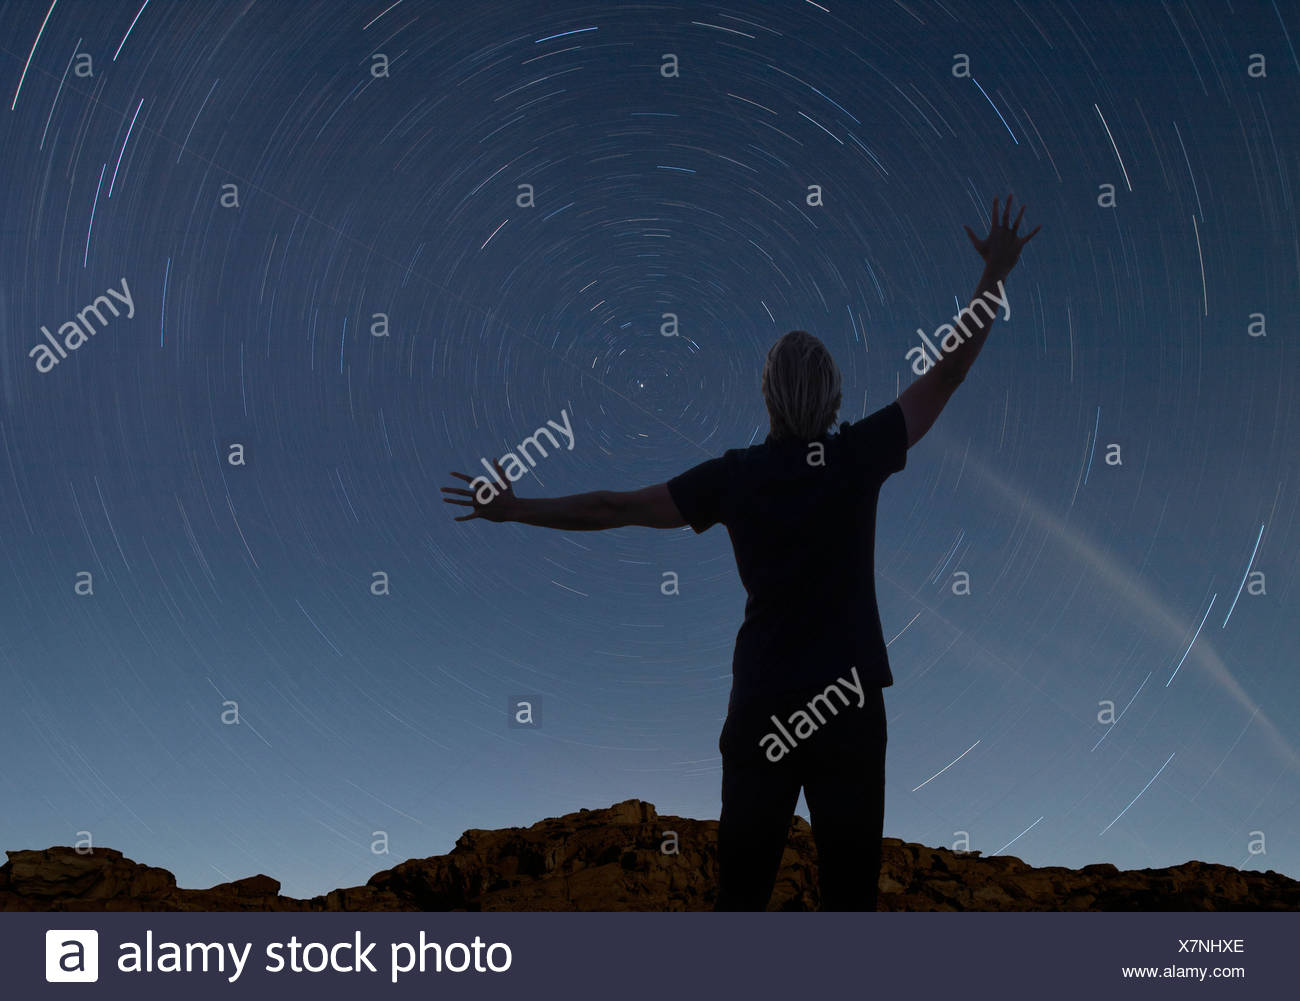 man watching the starry night sky - Stock Image